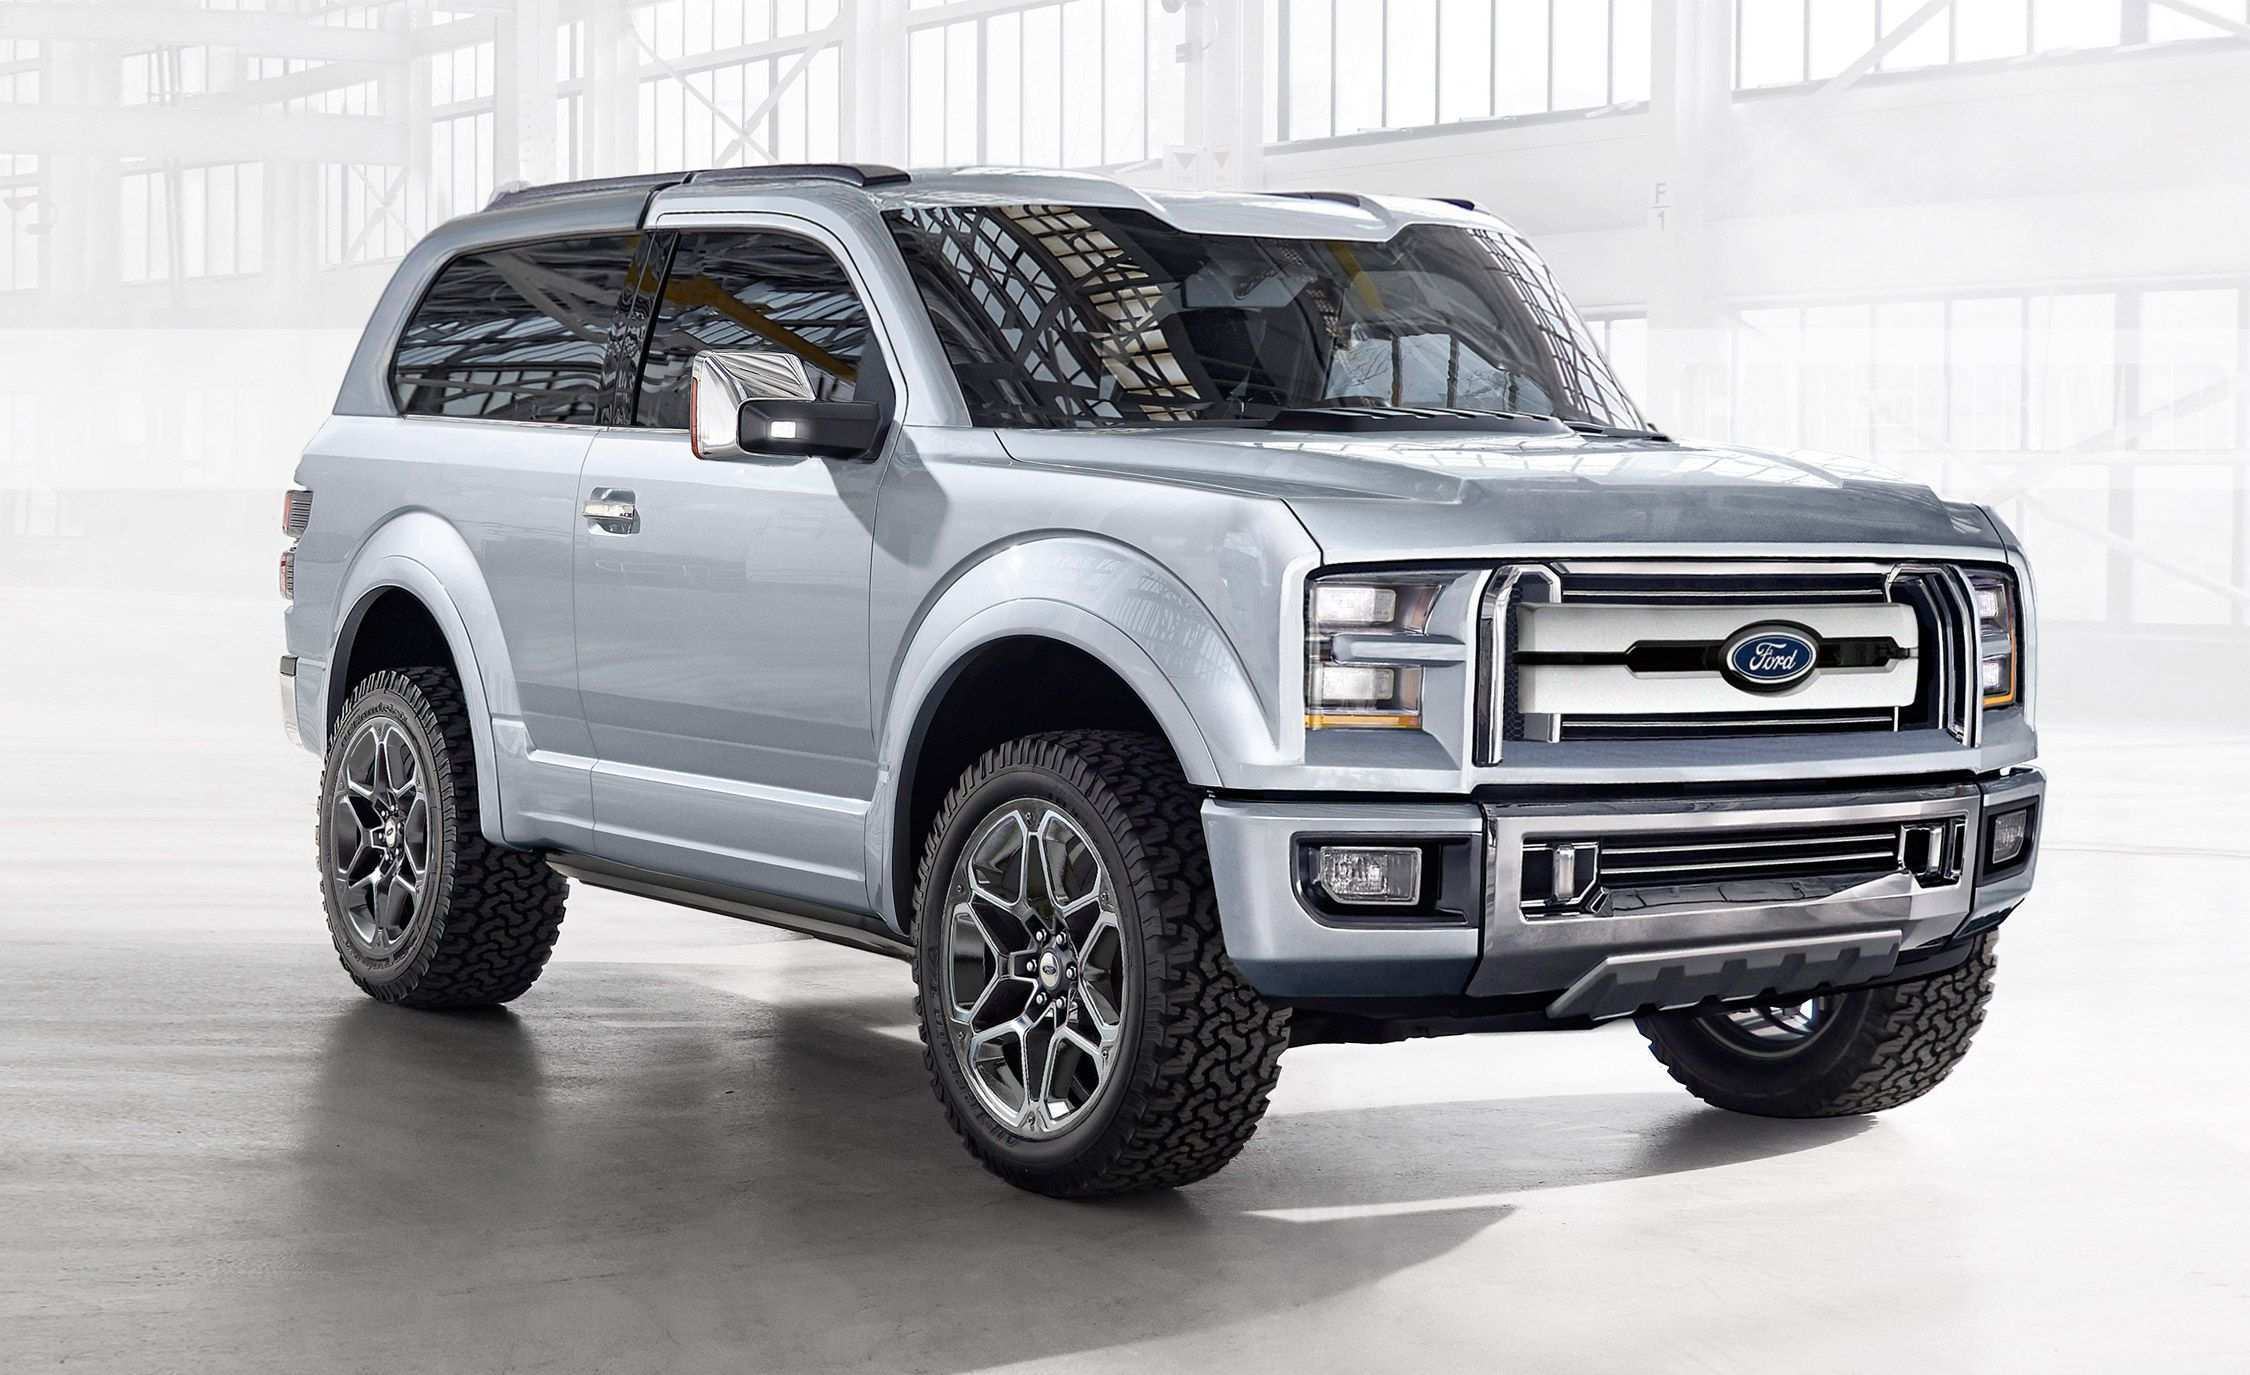 21 Great 2020 Ford Bronco Latest News Review with 2020 Ford Bronco Latest News